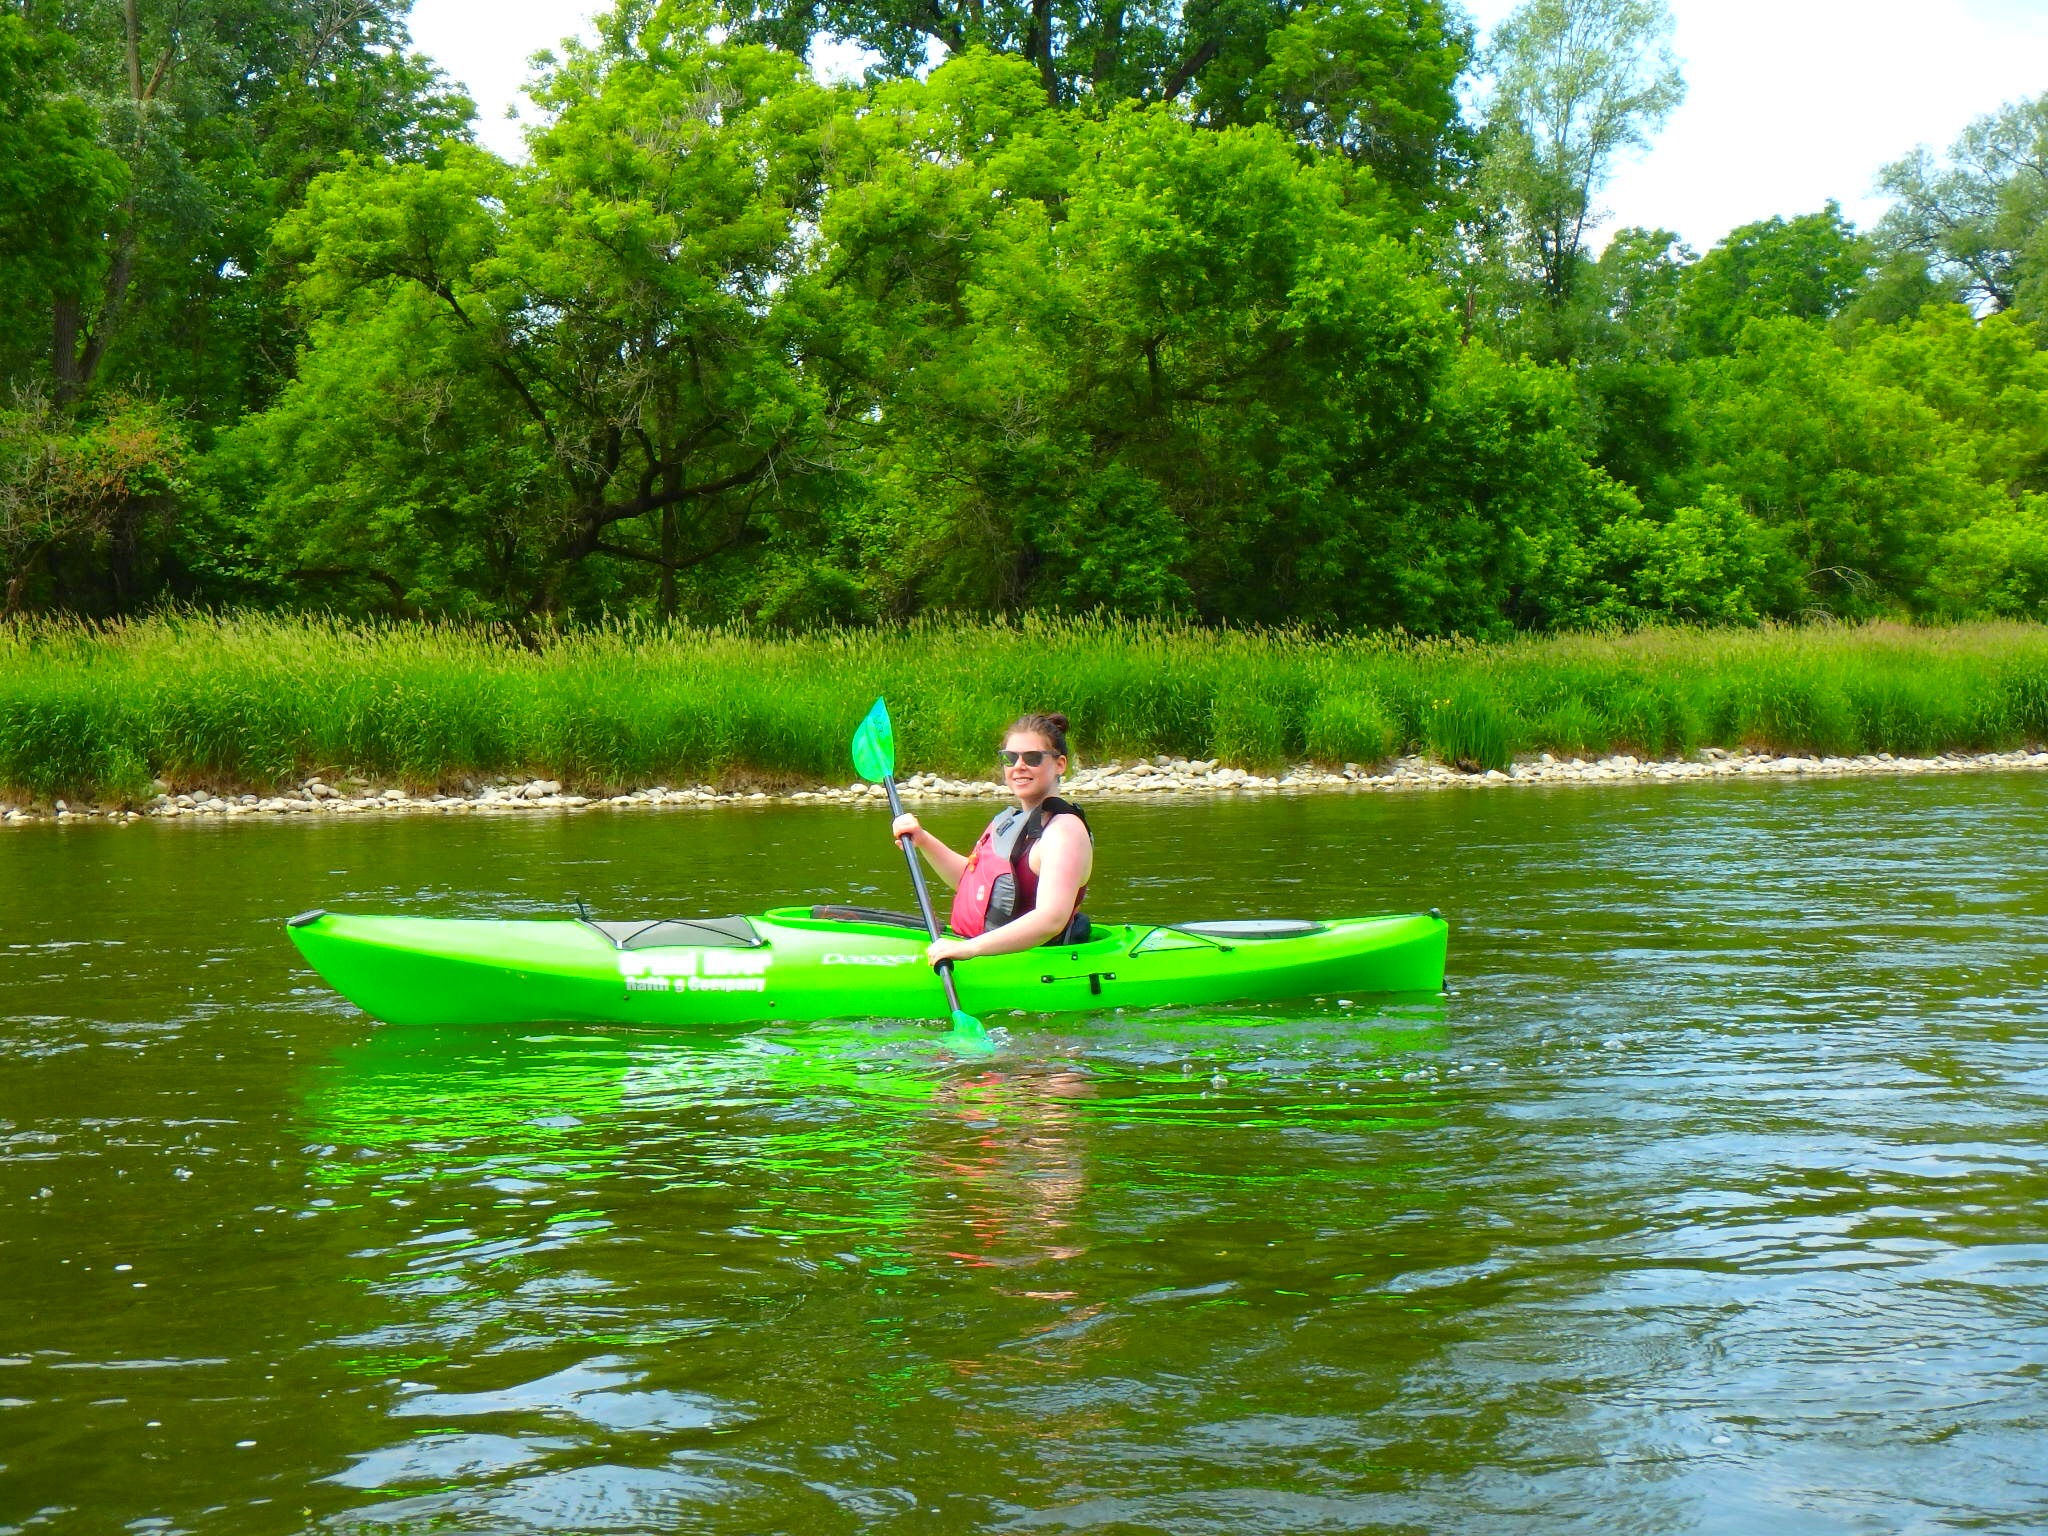 Kayaking Yoga Meditation Jun 13-18-22